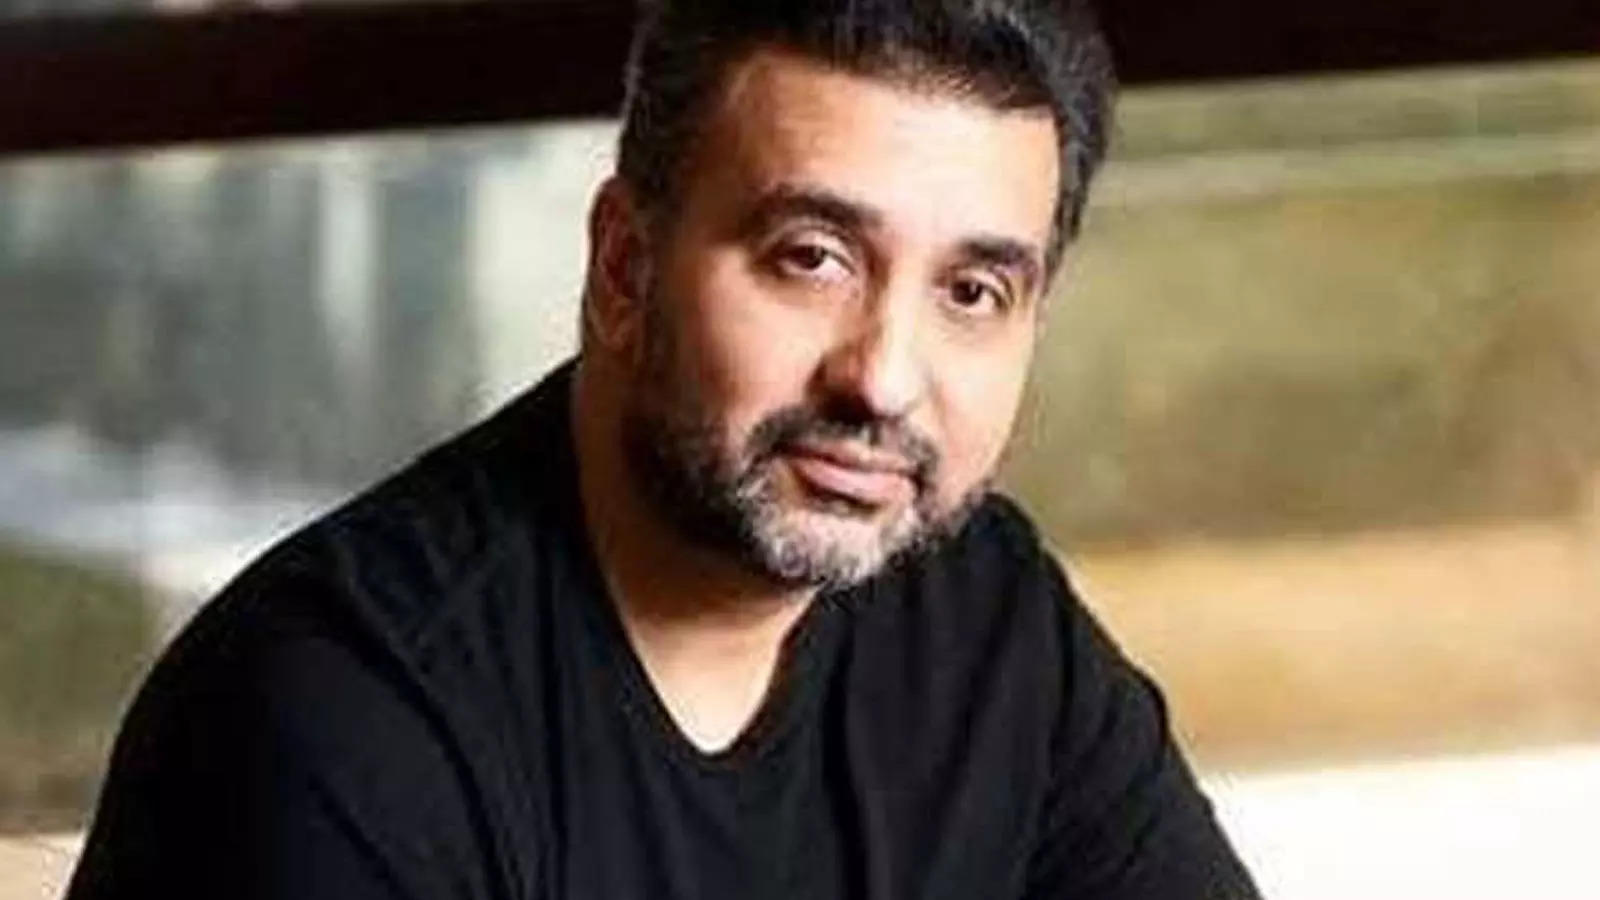 pornography-case-raj-kundra-withdraws-bail-application-a-day-after-crime-branch-files-charge-sheetpornography-case-raj-kundra-withdraws-bail-application-a-day-after-crime-branch-files-charge-sheet